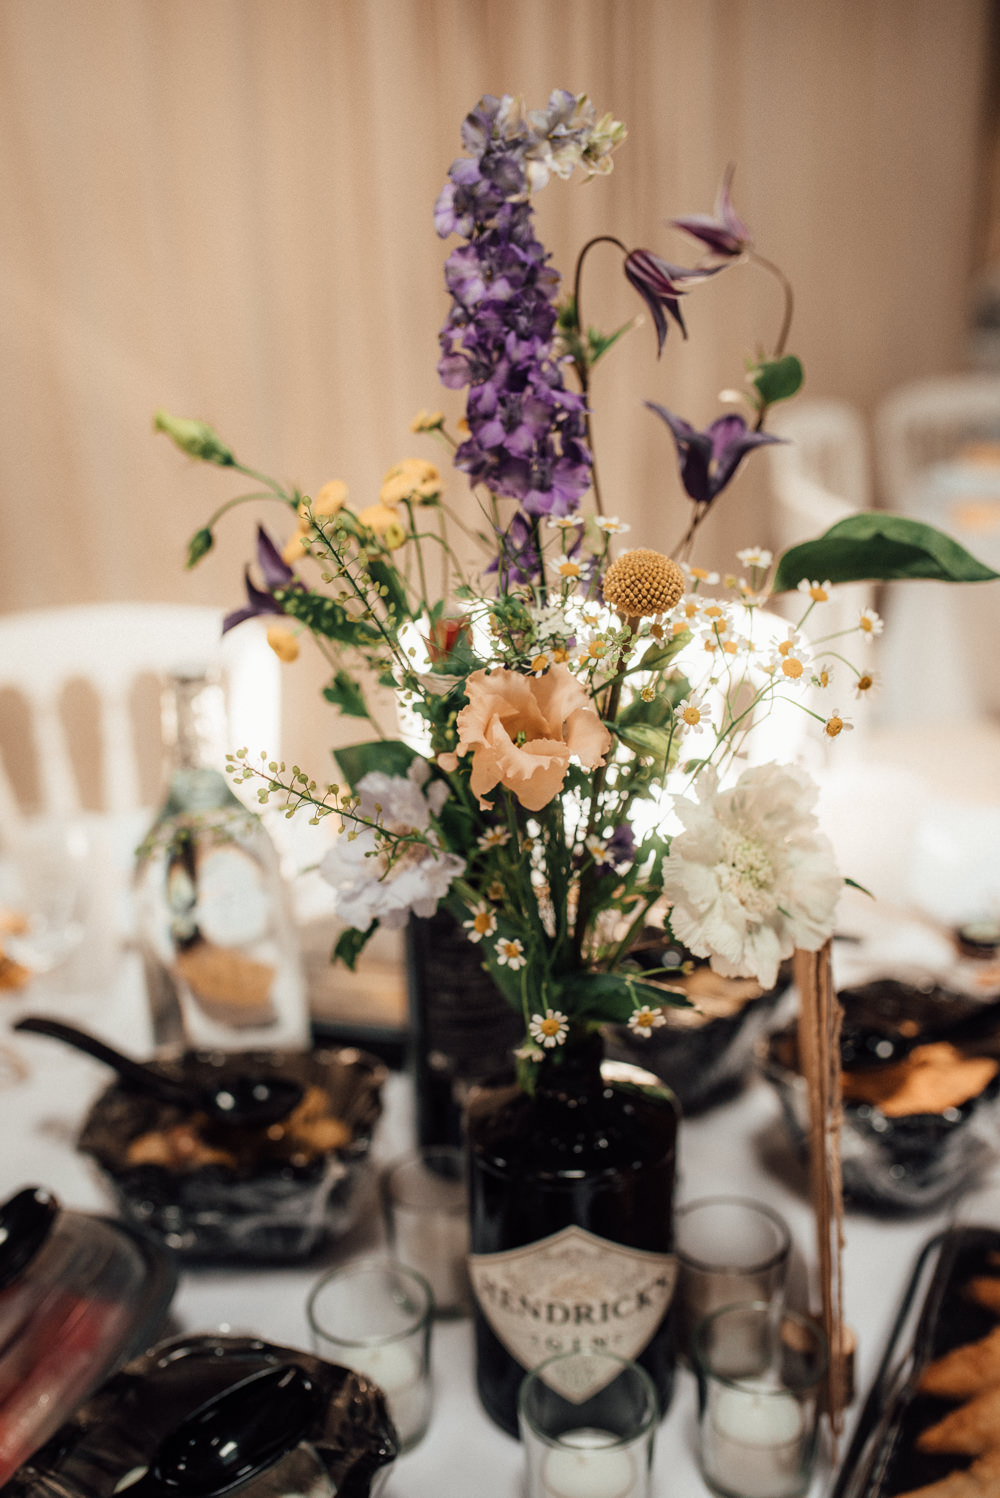 Table Flowers Centrepiece Gin Bottle Lineham Farm Wedding Marni V Photography